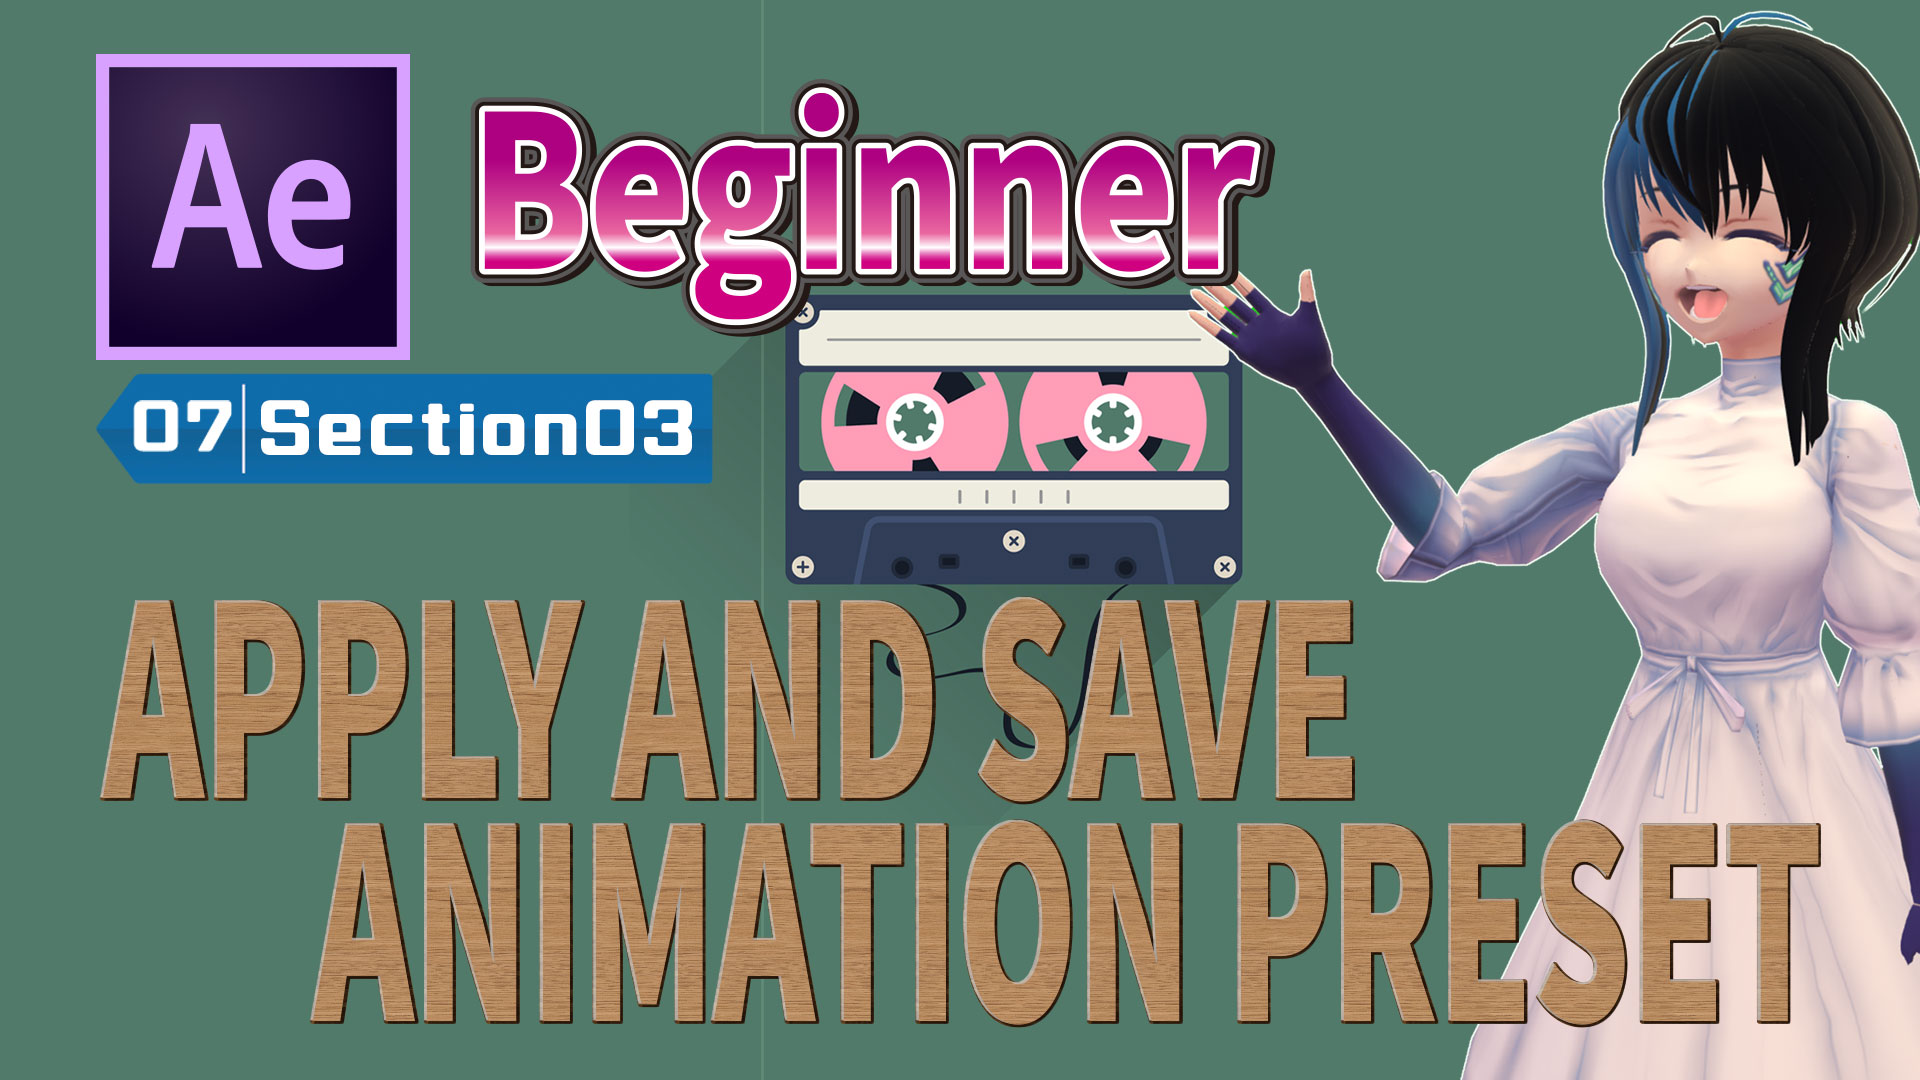 APPLY AND SAVE ANIMATION PRESET